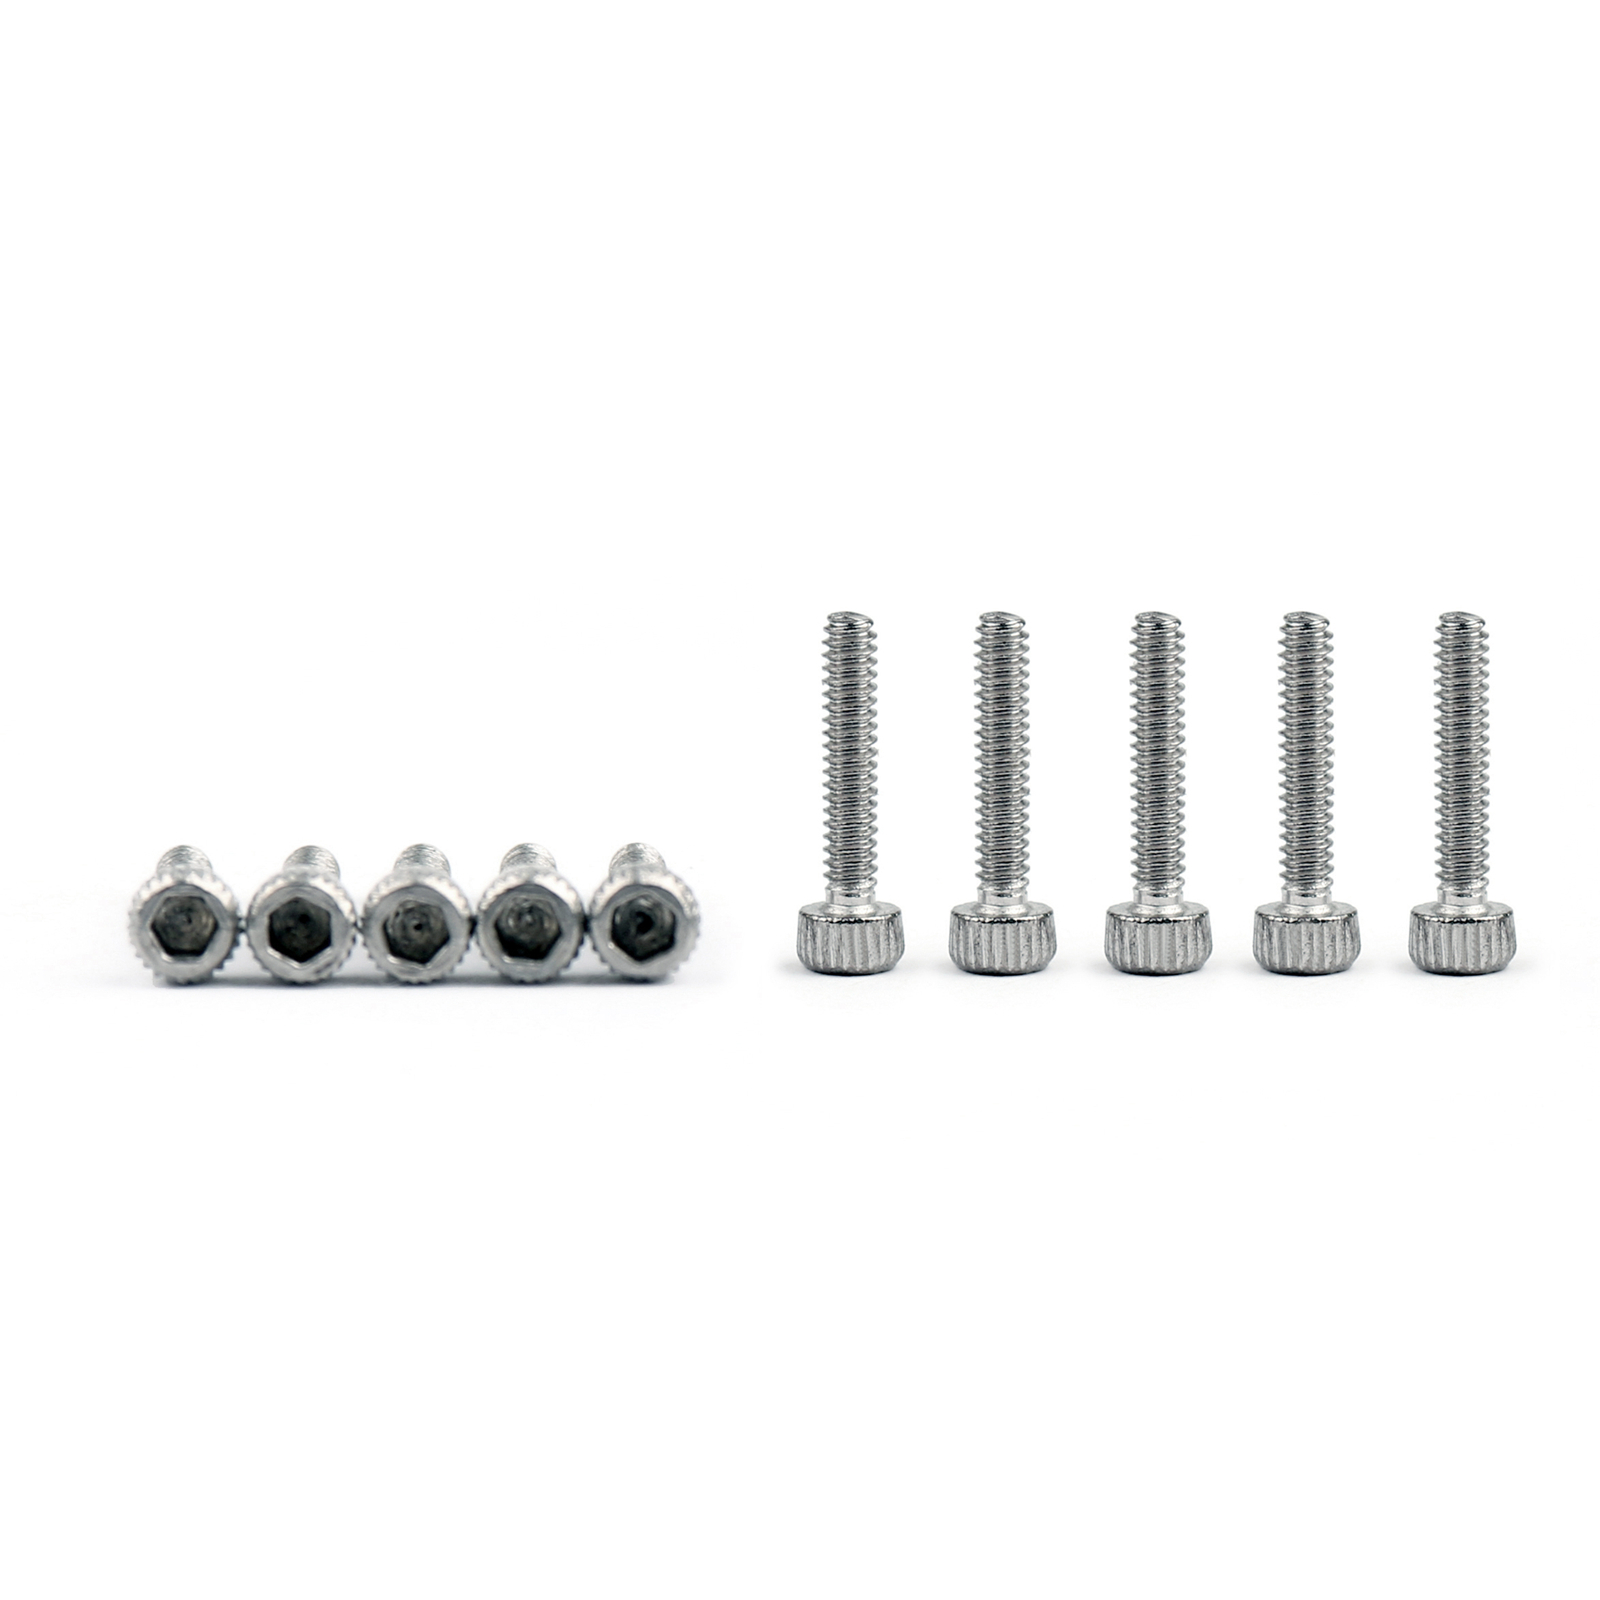 Metric M2 5 Stainless Steel Allen Hex Socket Cap Head